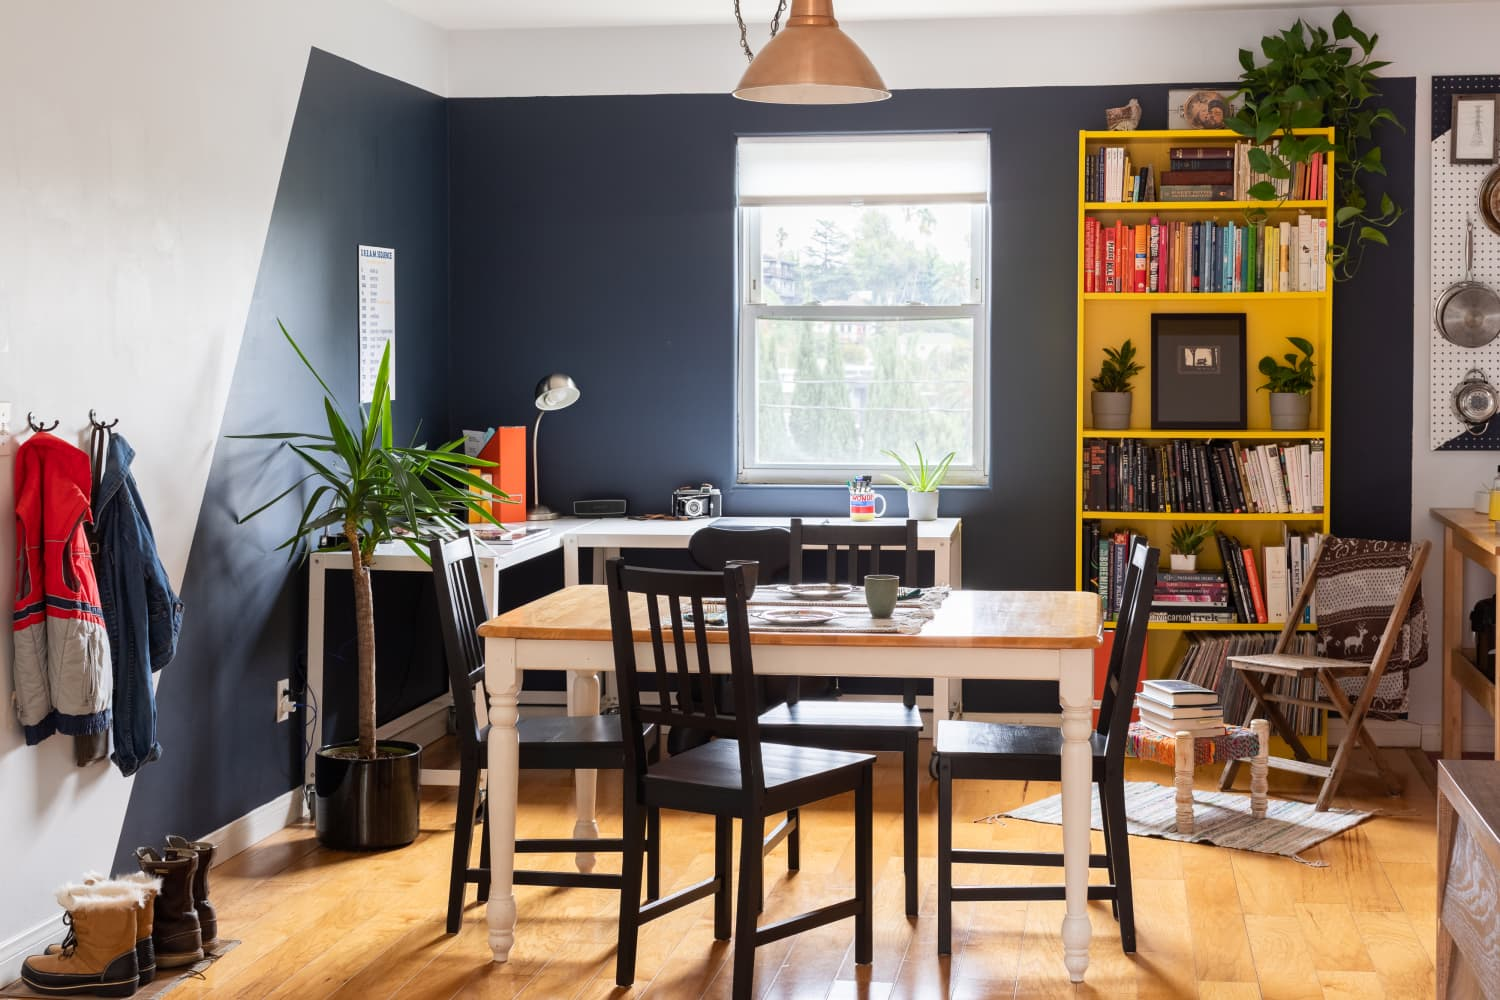 5 Easy, Rental-Friendly Upgrades to Prioritize When You're on a Budget